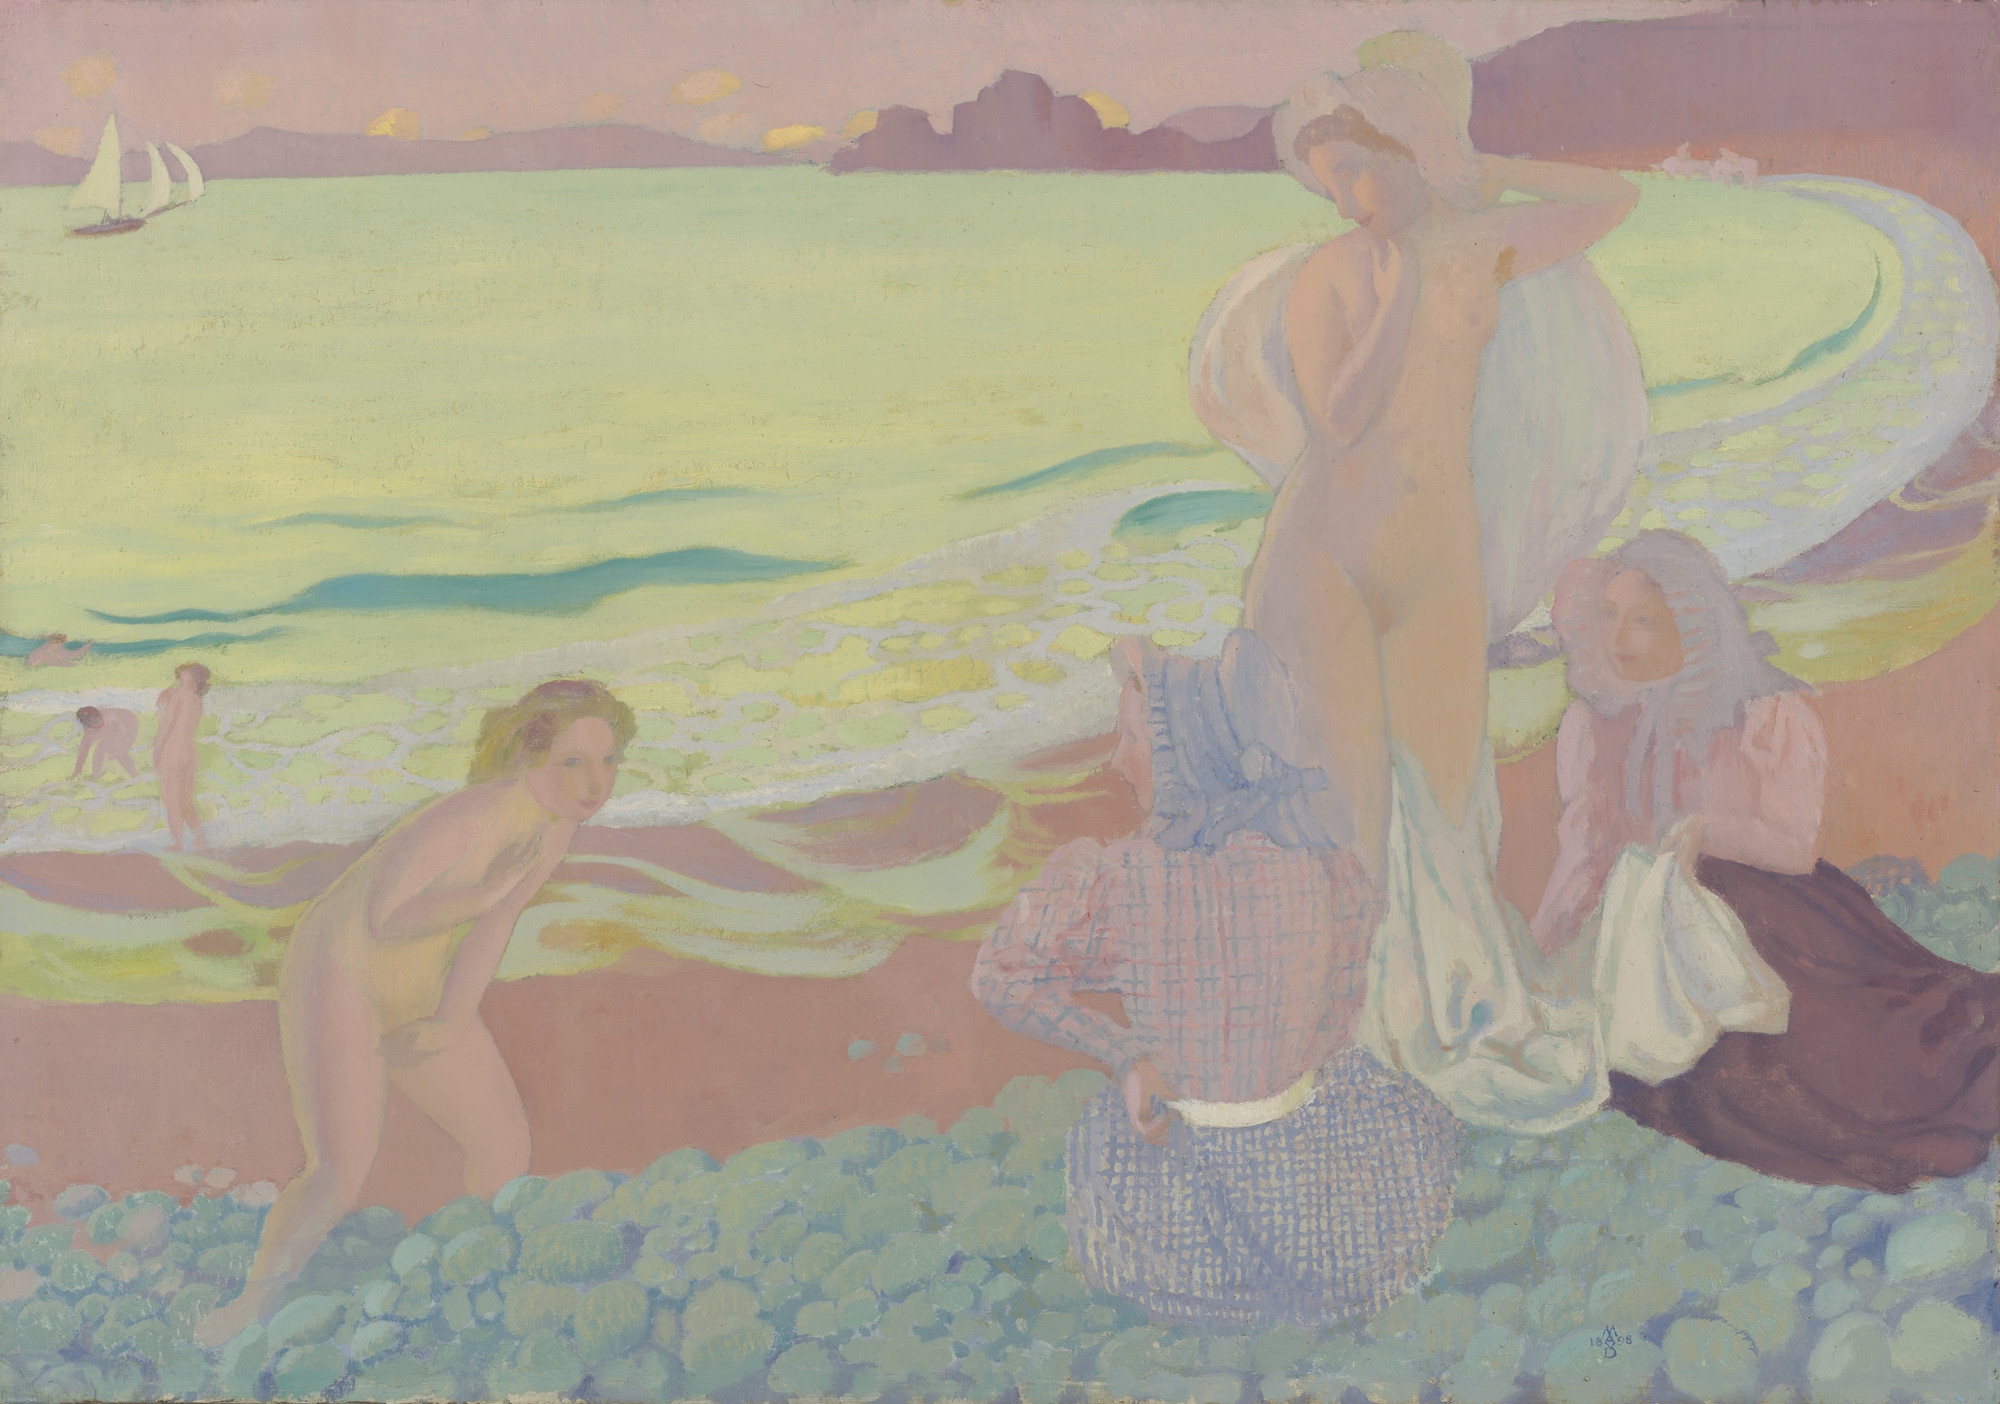 Maurice Denis. On the Beach of Trestrignel. 1898